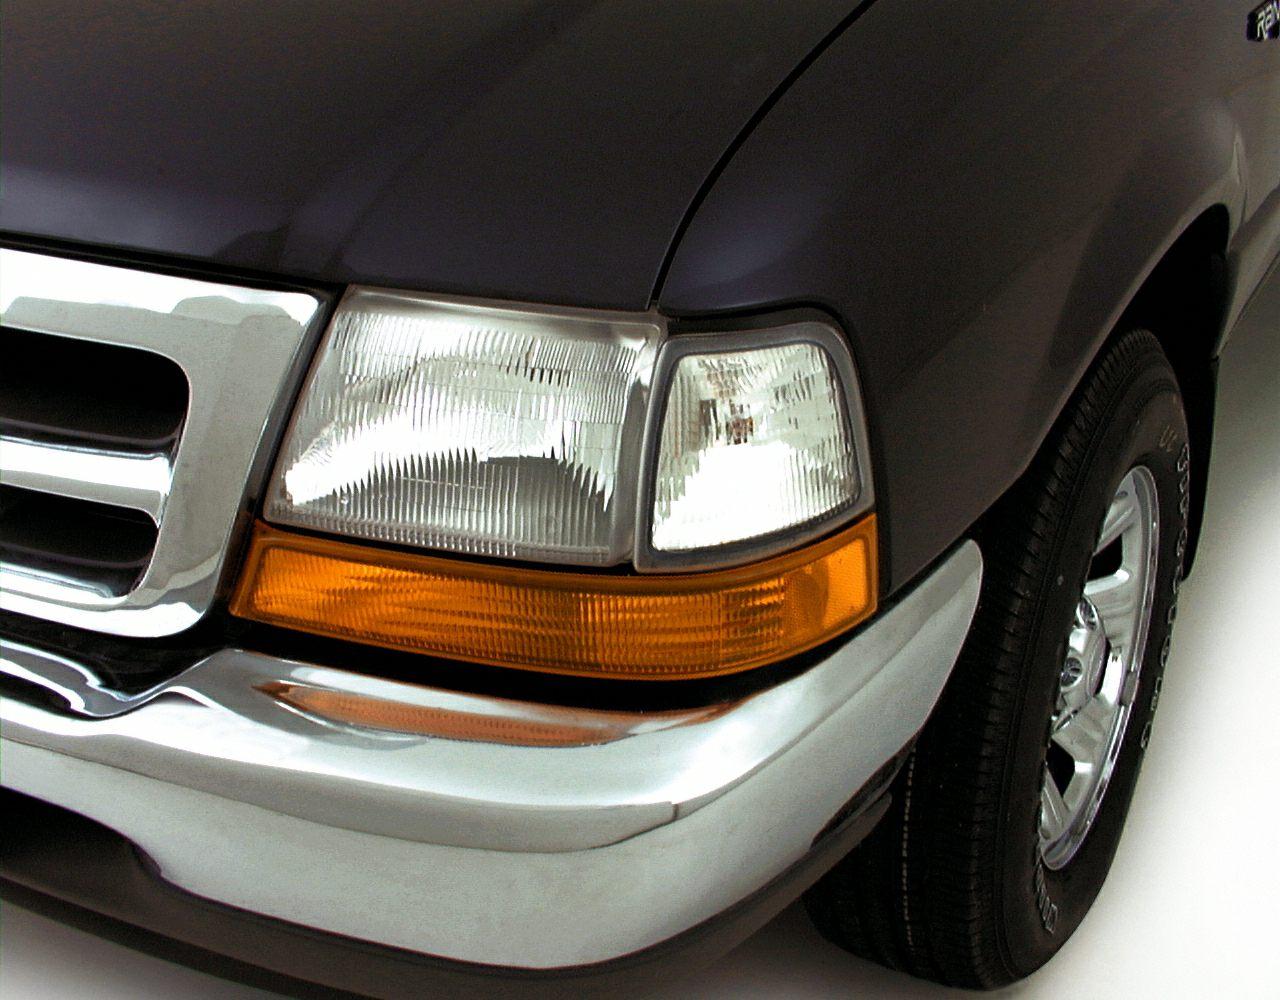 2000 Ford Ranger Exterior Photo